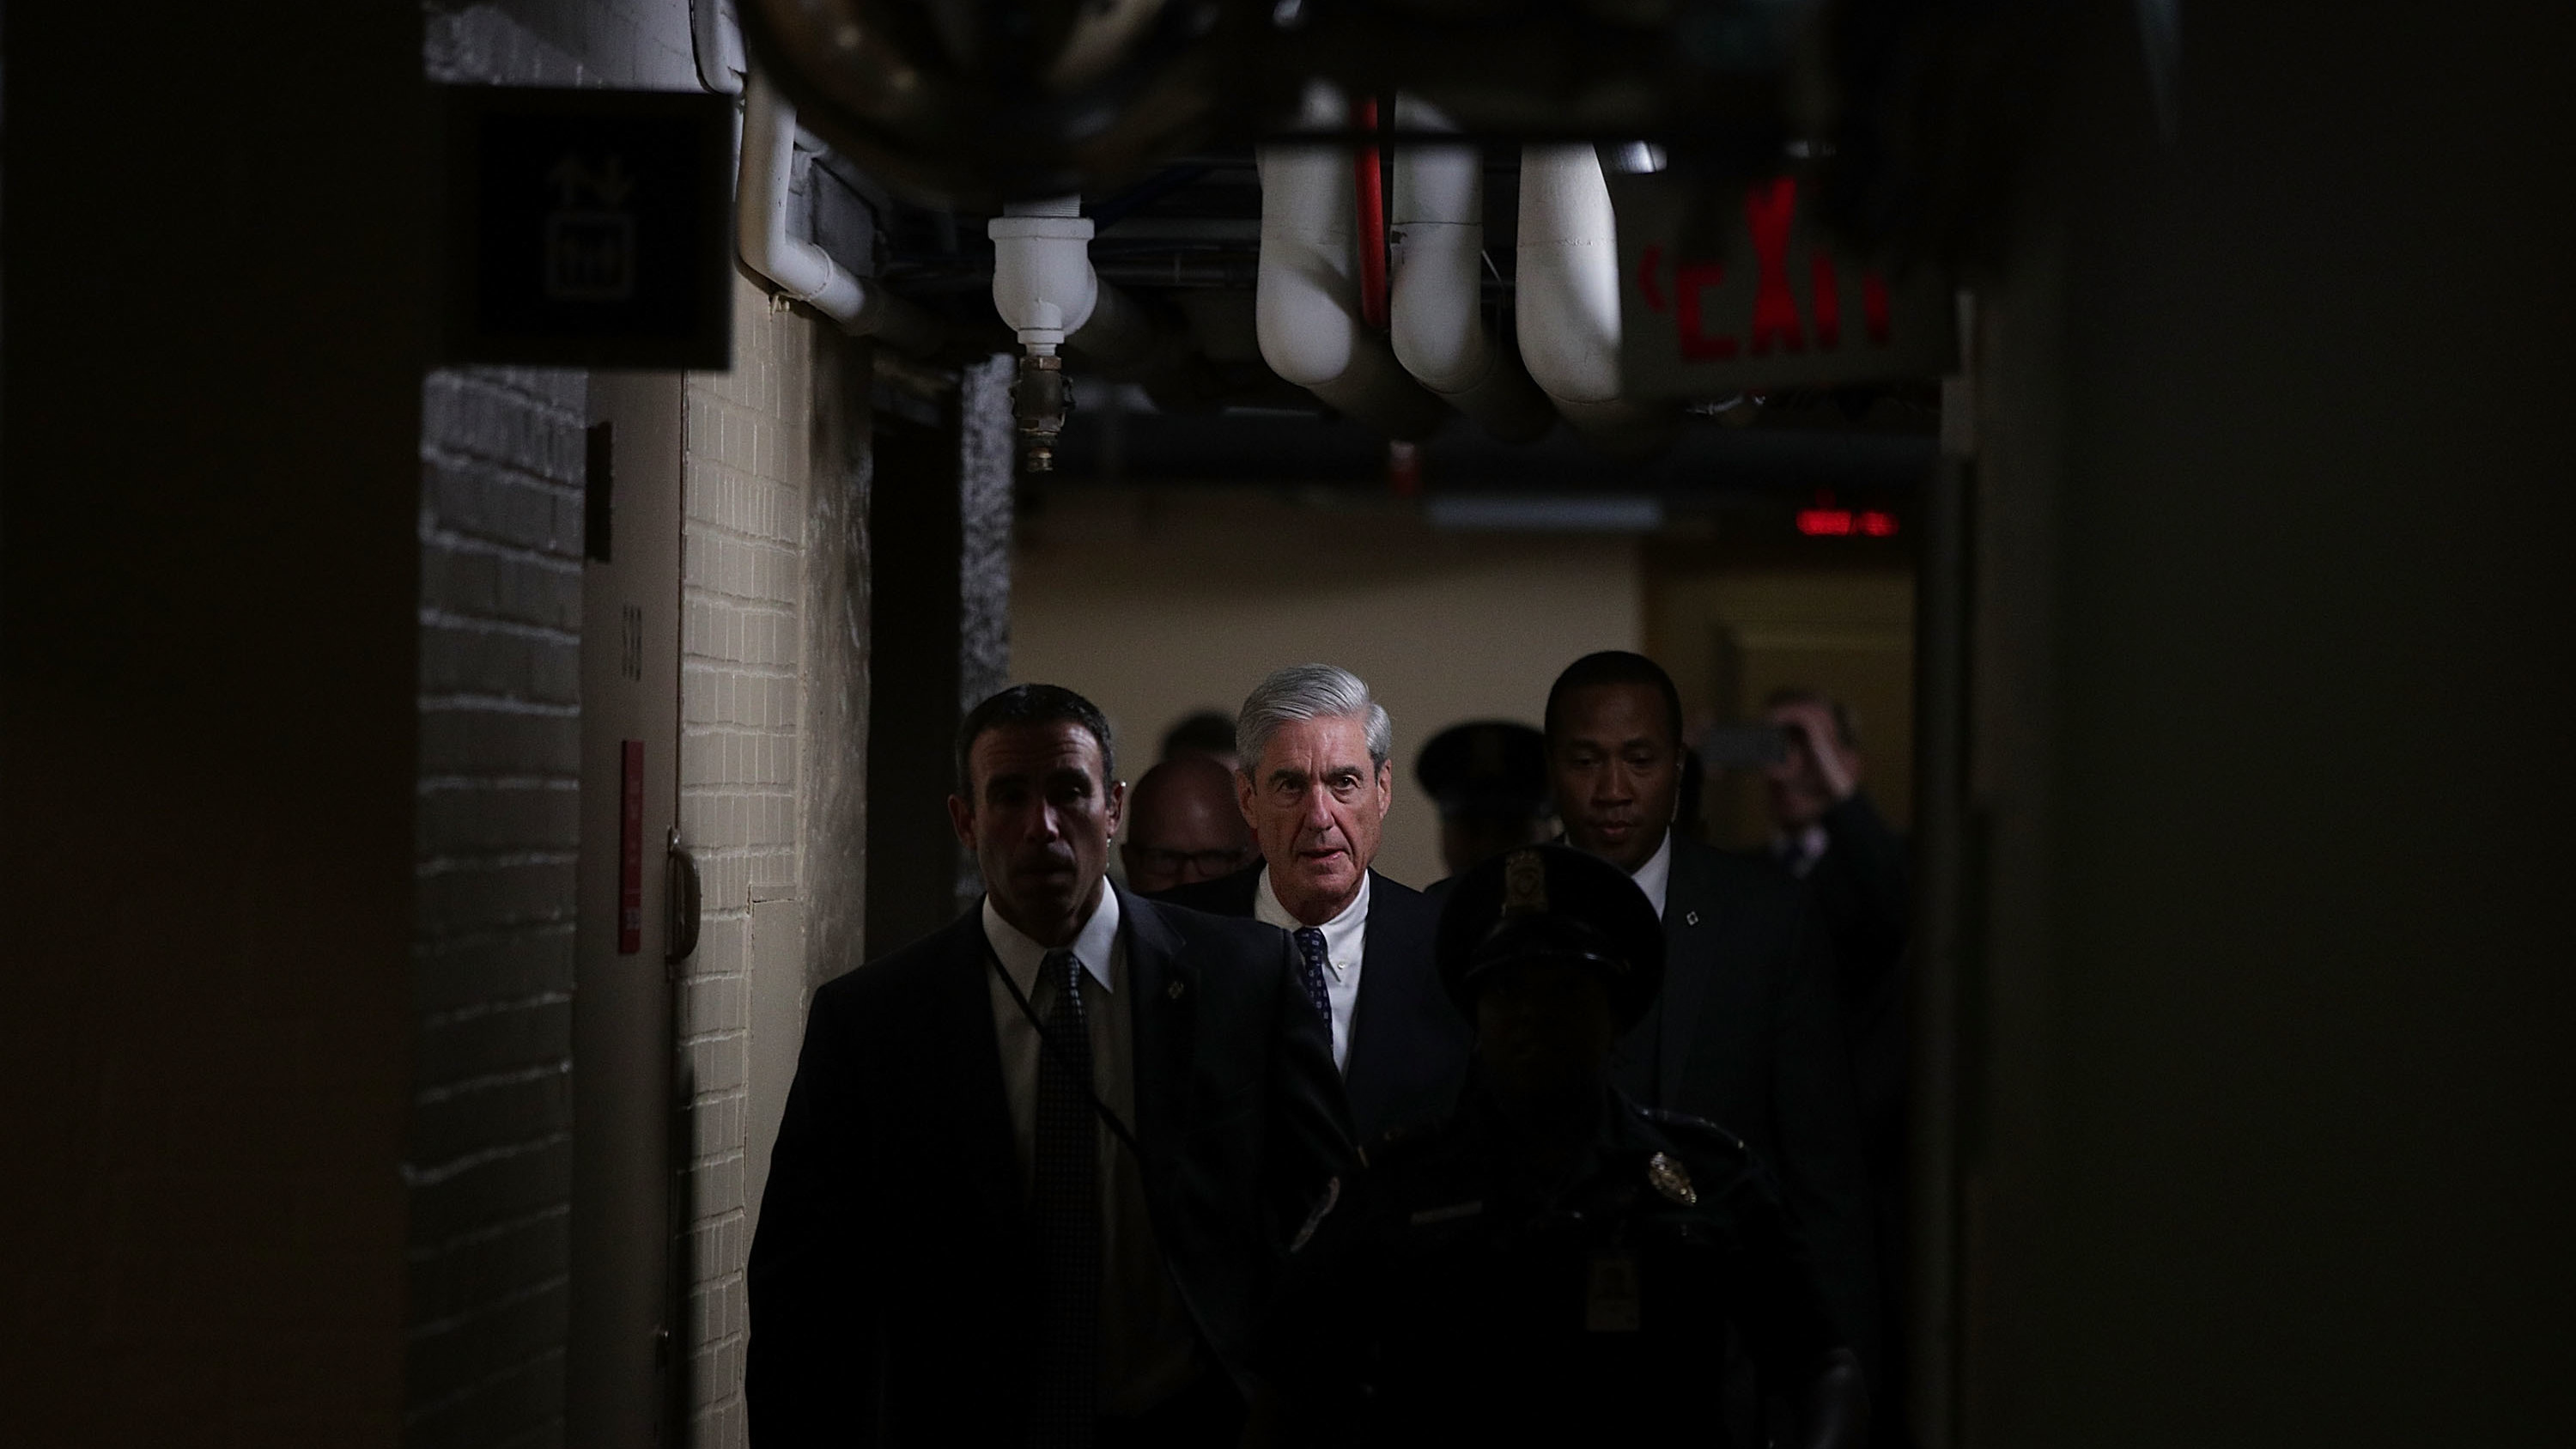 Special counsel Robert Mueller (center) leaves after a closed meeting with members of the Senate Judiciary Committee on June 21, 2017, at the Capitol in Washington, D.C.